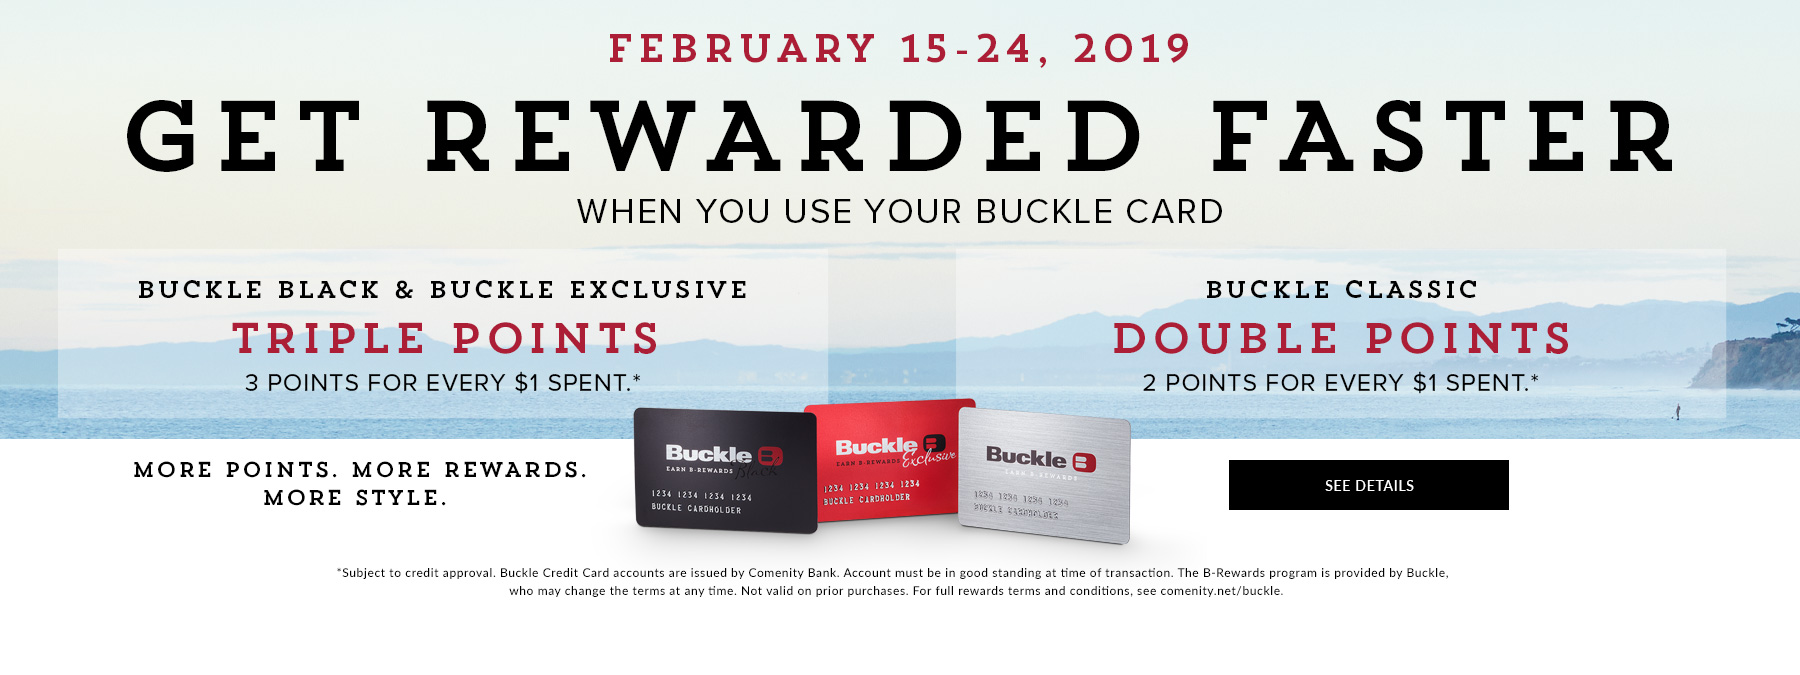 February 15-24, 2019 - Get Rewarded Faster When You Use Your Buckle Card. For full rewards terms and conditions, see comenity.net/buckle.